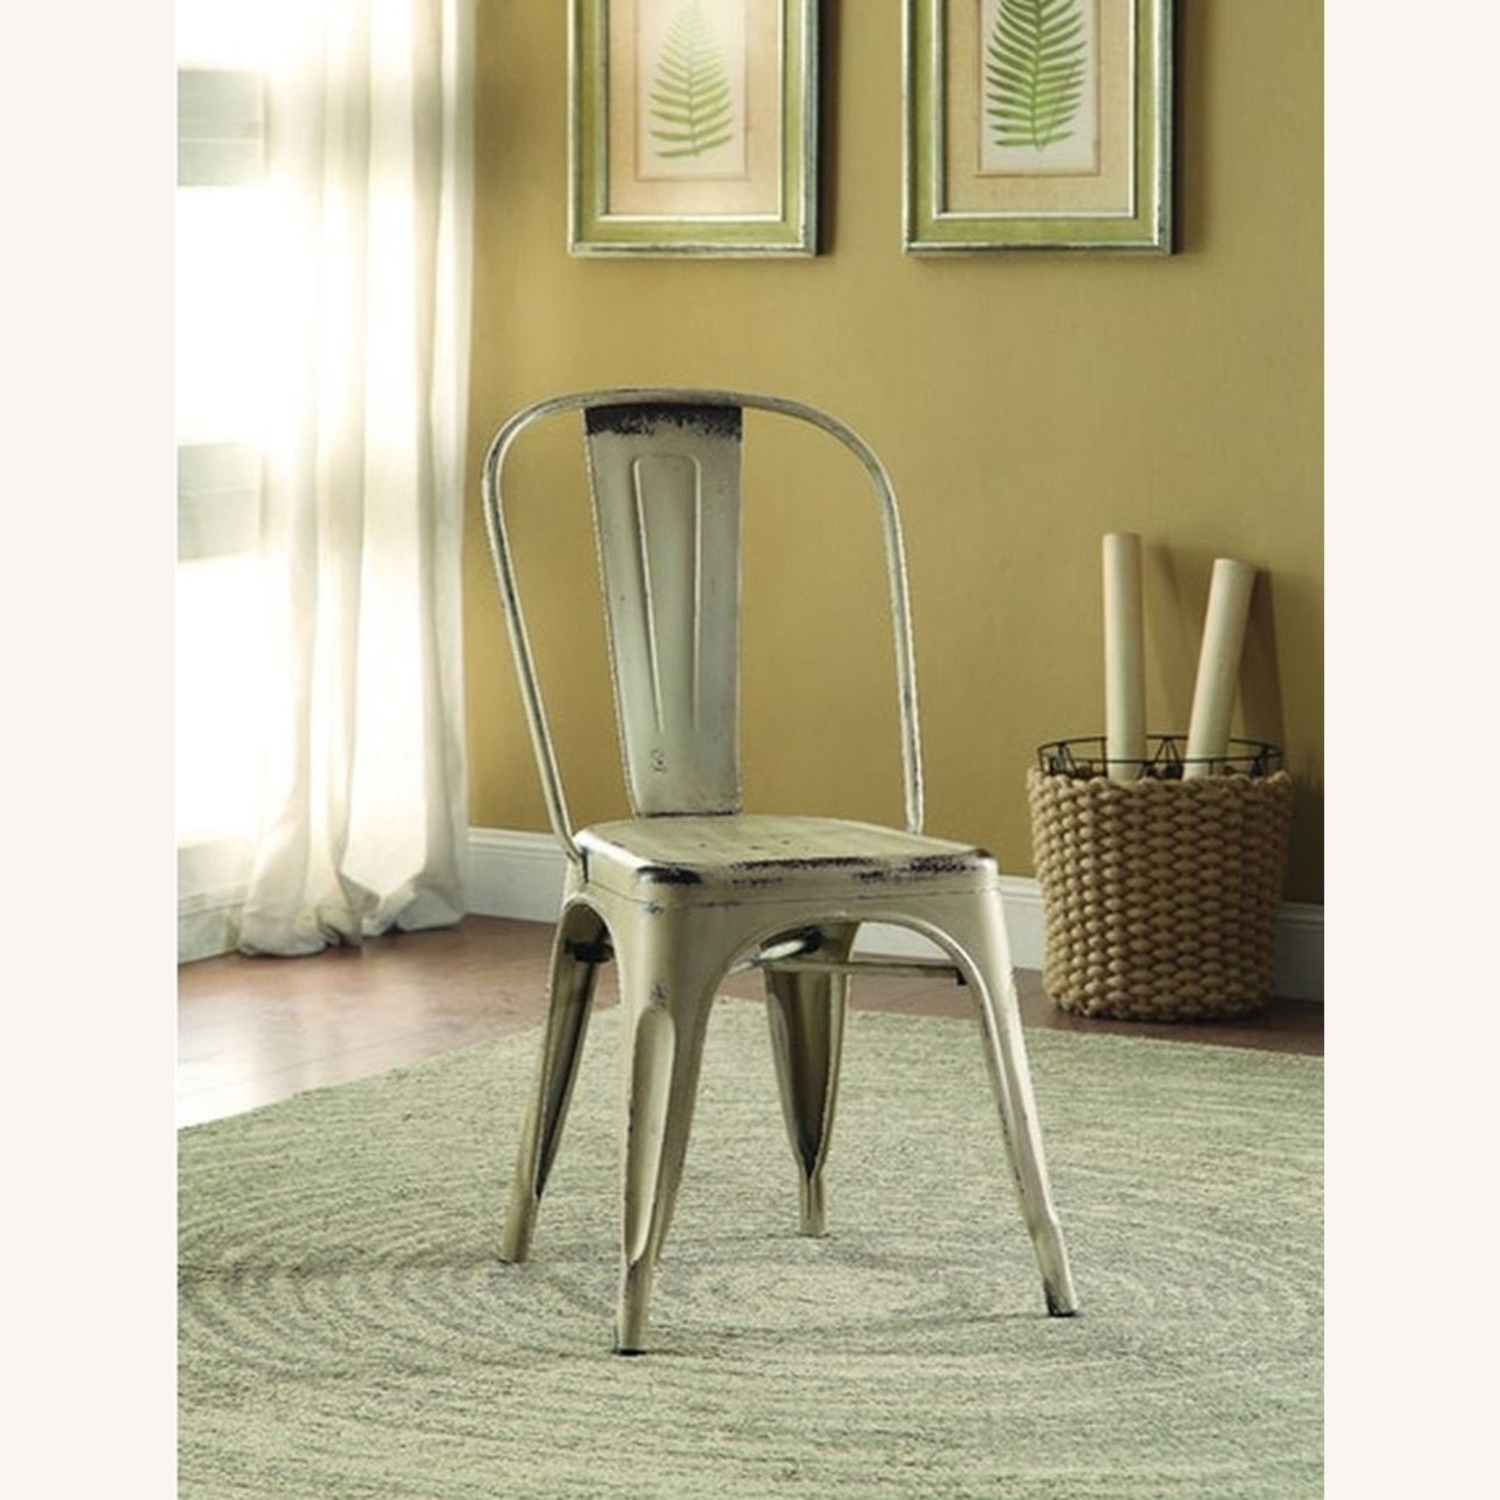 Modern Industrial Dining Chair In White Metal - image-2